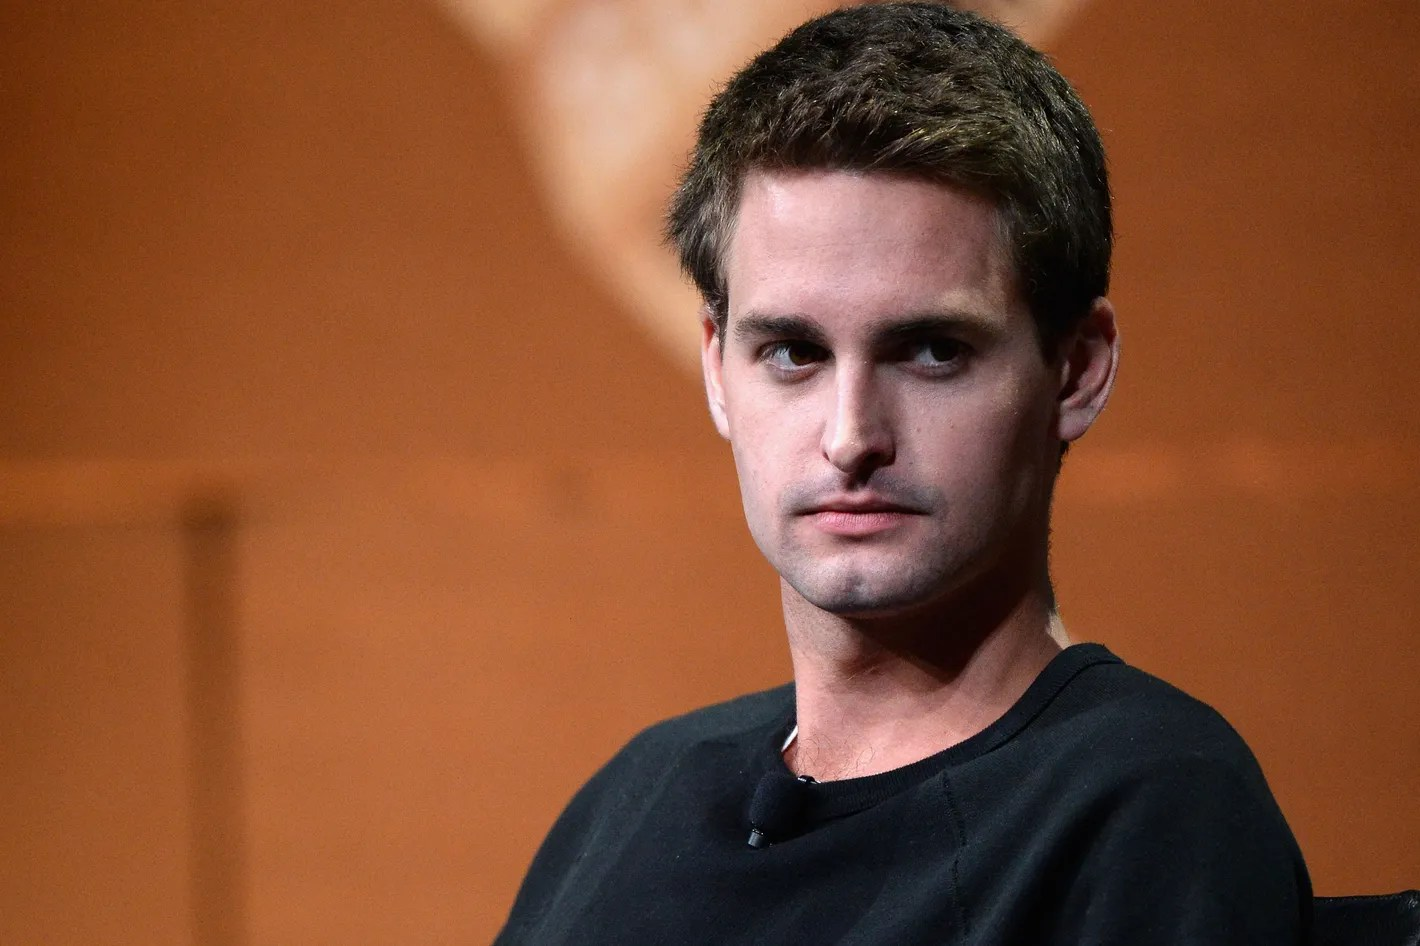 Spiegel 24 Evan Spiegel S Hatred Of Growth Hacking Is Good